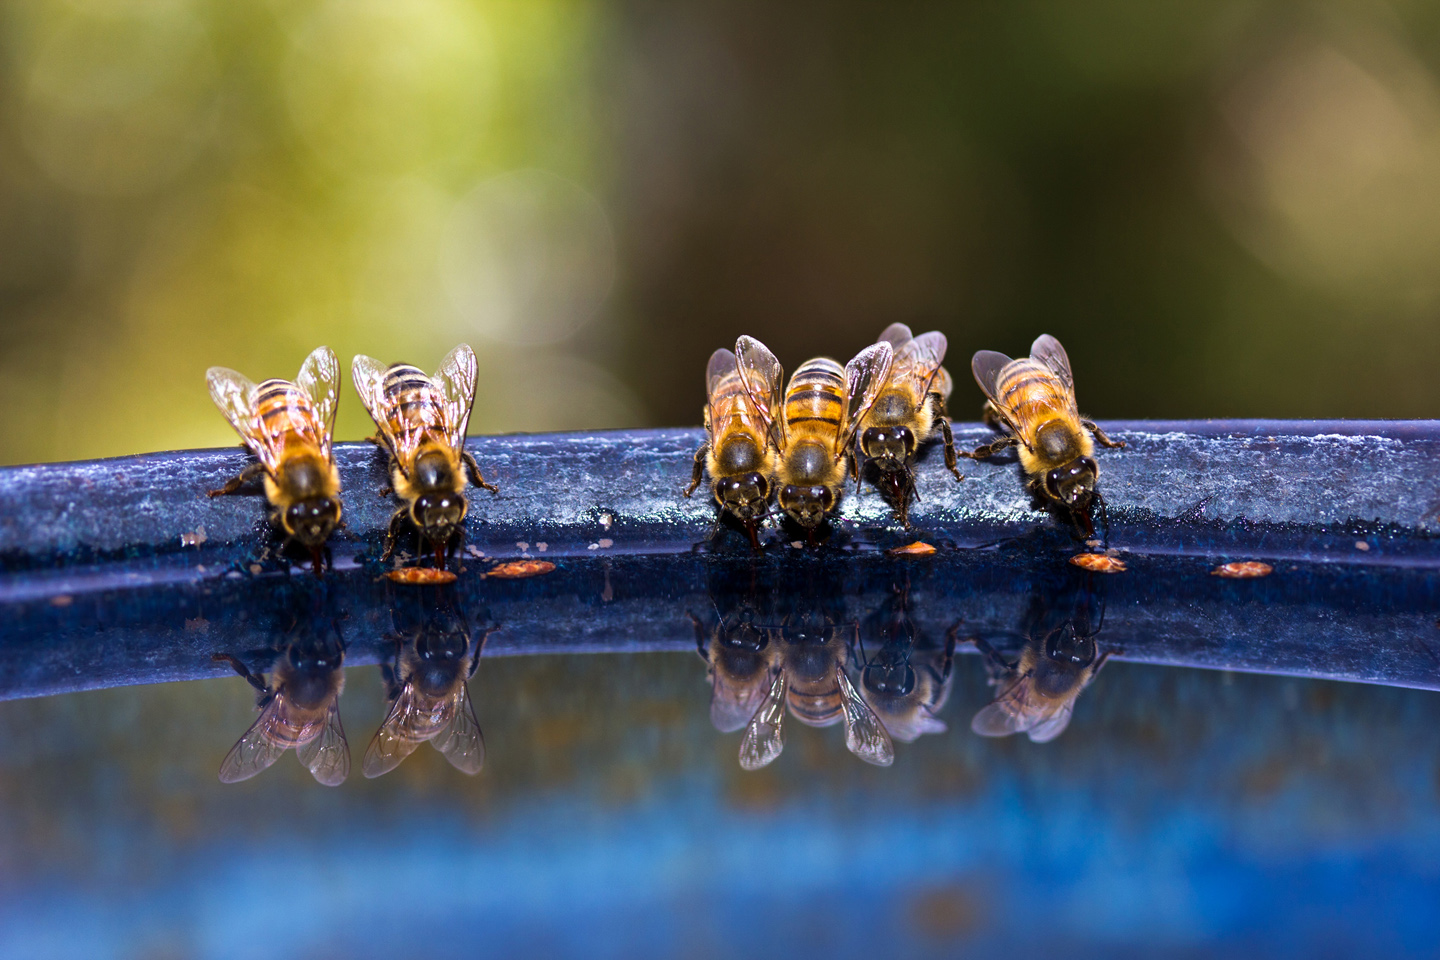 Sedona Bees stop for a sip of water. Photo by J. Spenser.